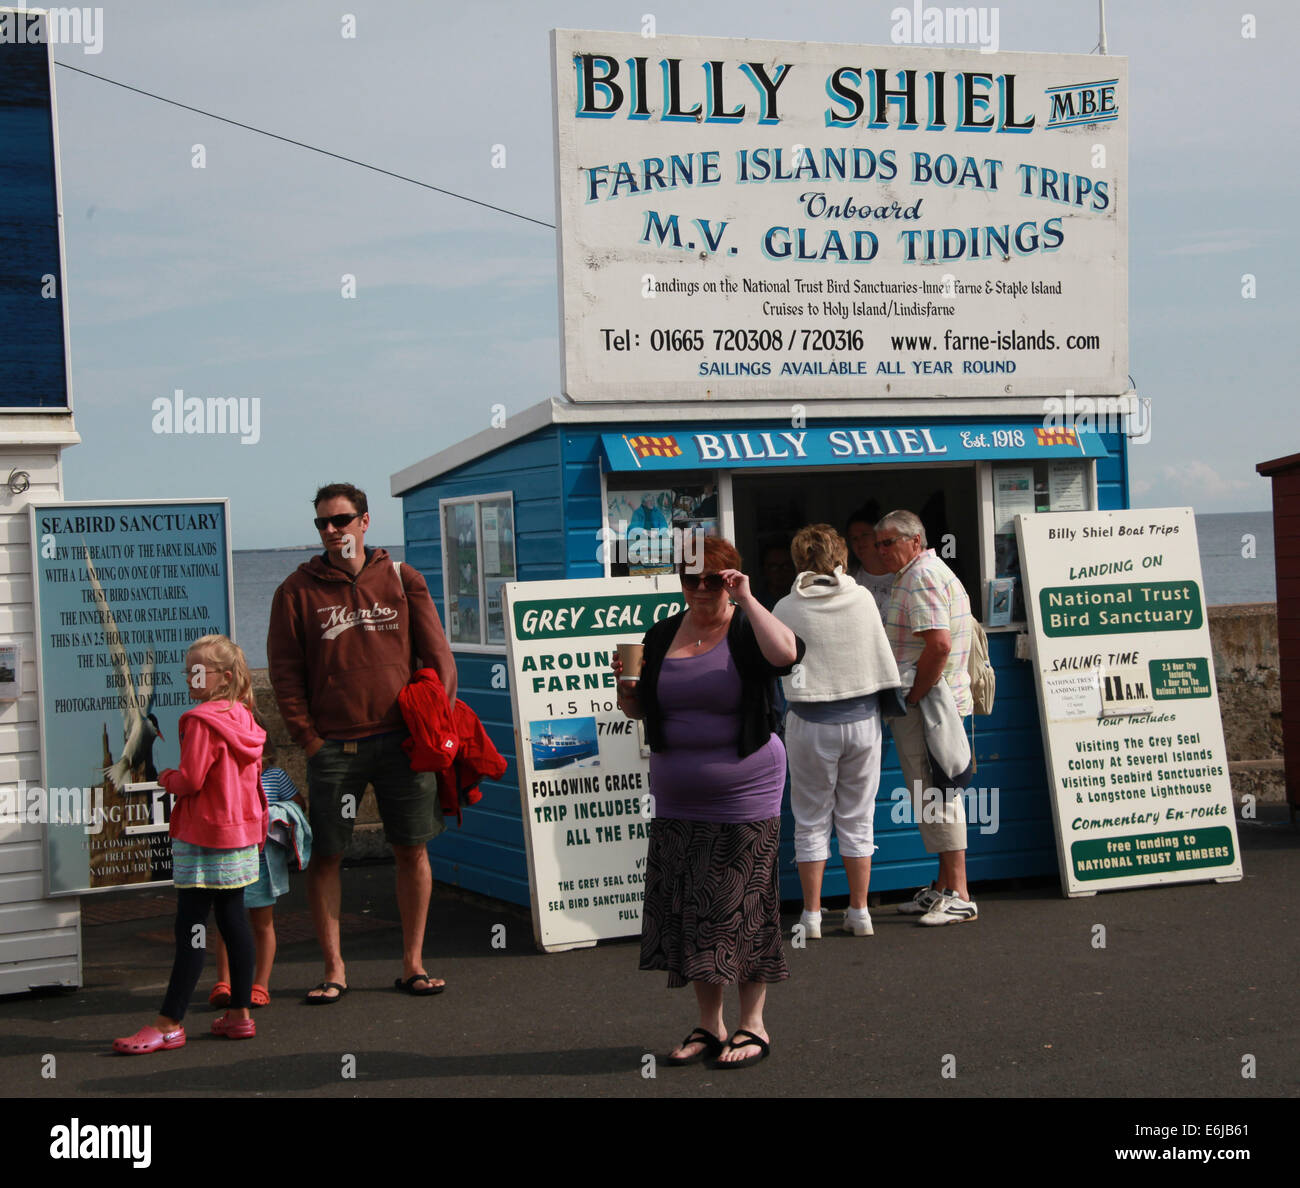 Billy,Shiel,Farne,Islands,Island,tour,boat,trip,trips,at,Seahouses,NE,England,Northumberland,Seals,Seal,Golden,gate,Longstone,Lighthouse,Serenity,StCuthbert,St,Cuthbert,shed,ticket,office,offices,tourist,tourism,11am,departure,travel,GB,great,britain,british,maritine,seaside,town,towns,family,fish,Gotonysmith,fishing,hobby,tour,ticket,tickets